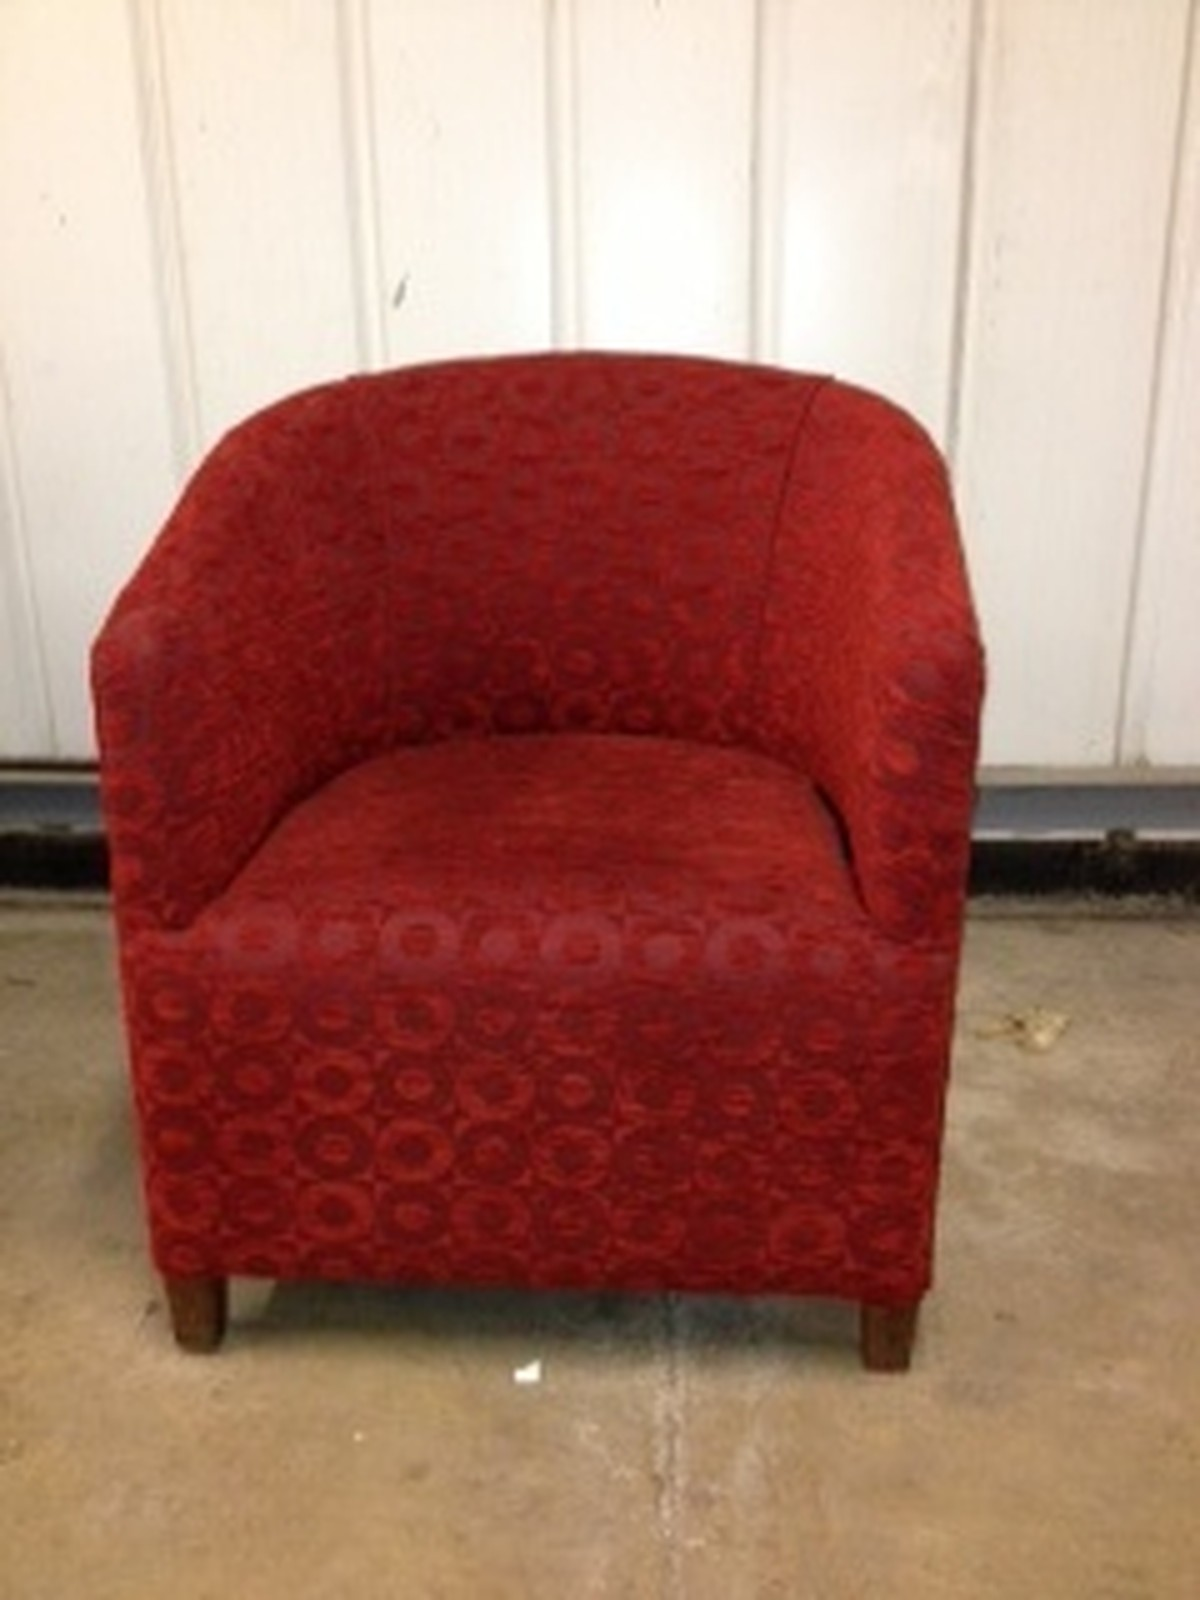 Secondhand Chairs And Tables Lounge Furniture 10x Red